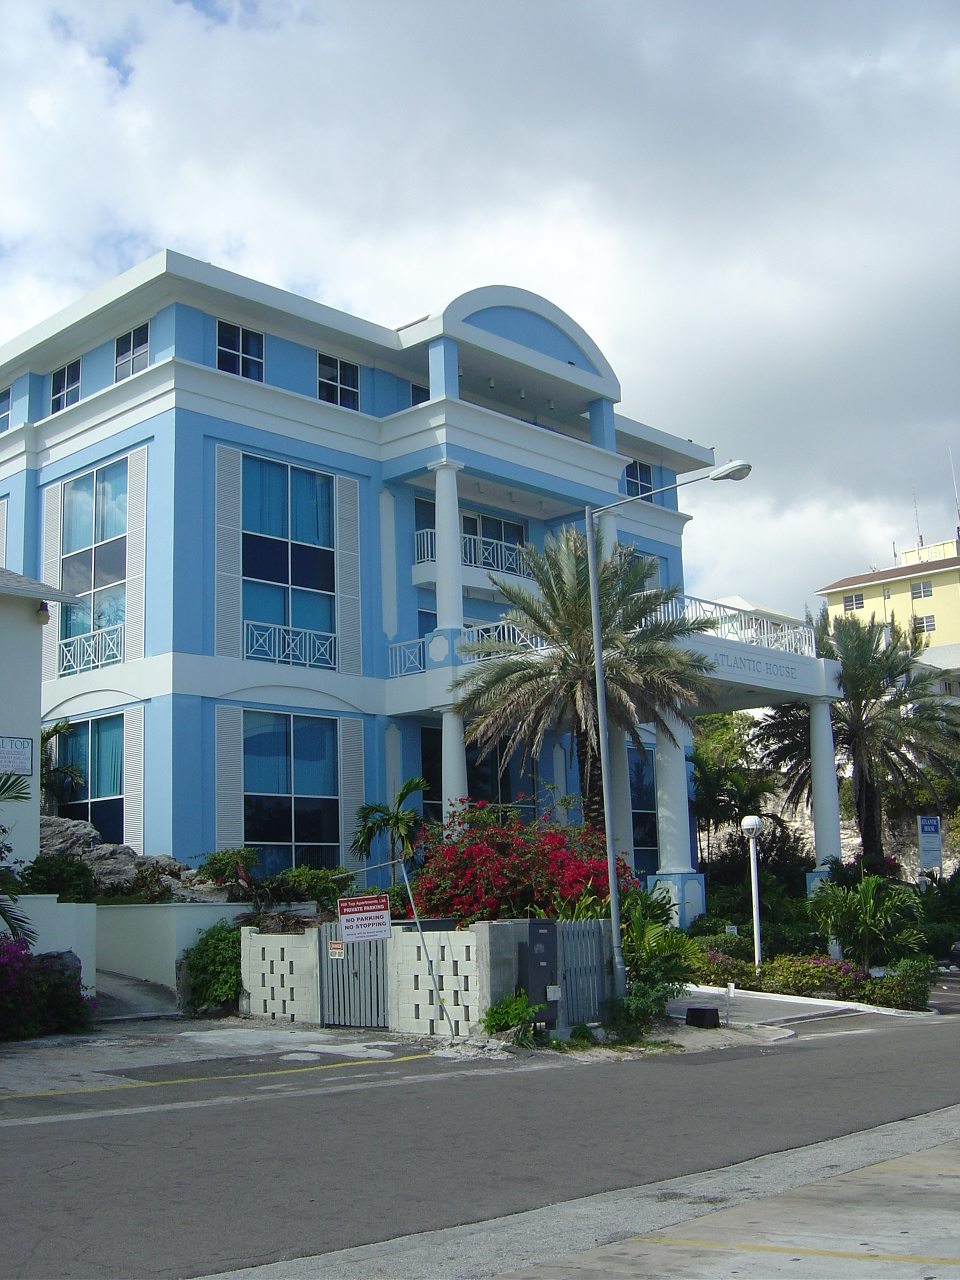 b4a7e3cb68 Bahamas Local - your local search engine